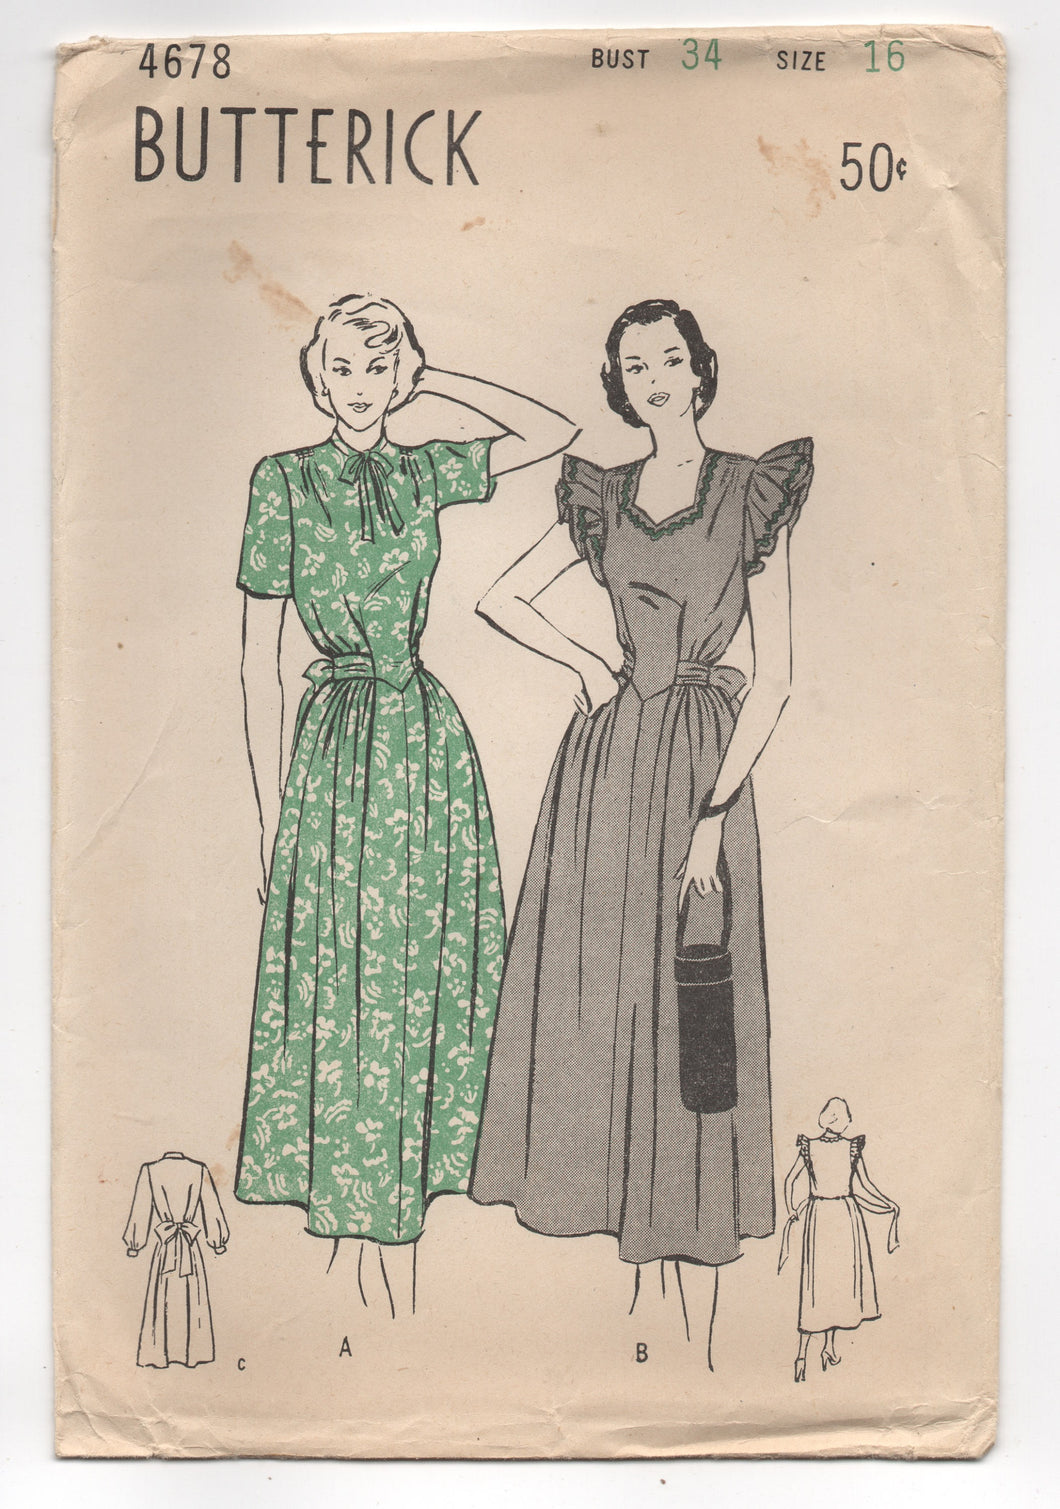 1940's Butterick One Piece Maternity Dress with Tie Waist - Bust 34